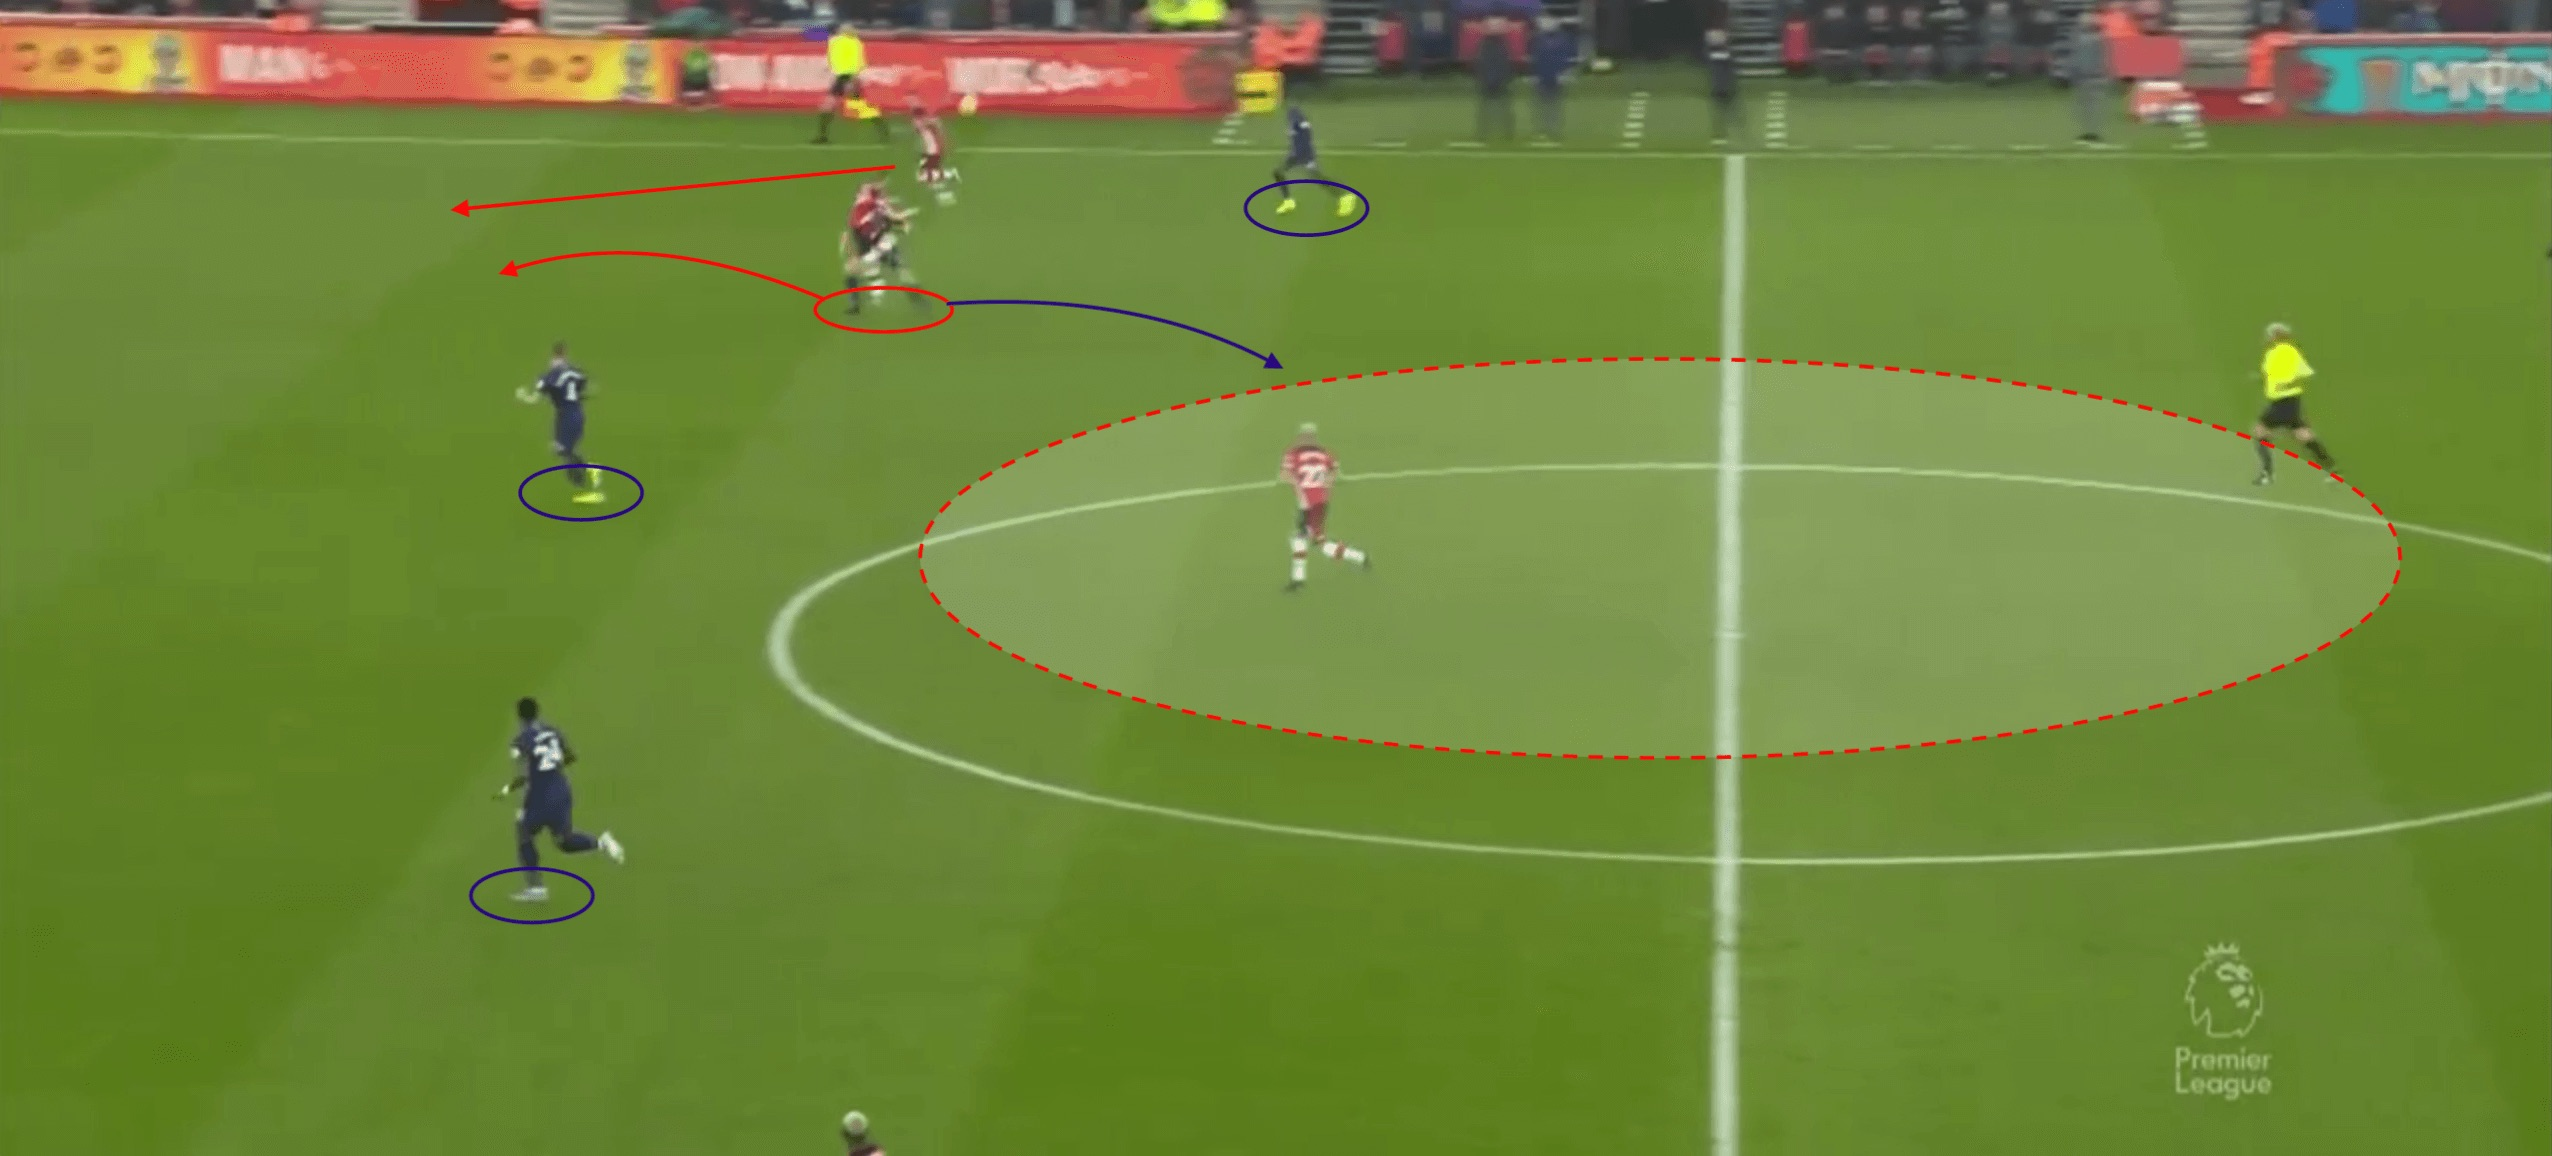 Premier League 2019/20: Southampton vs Tottenham - tactical analysis tactics